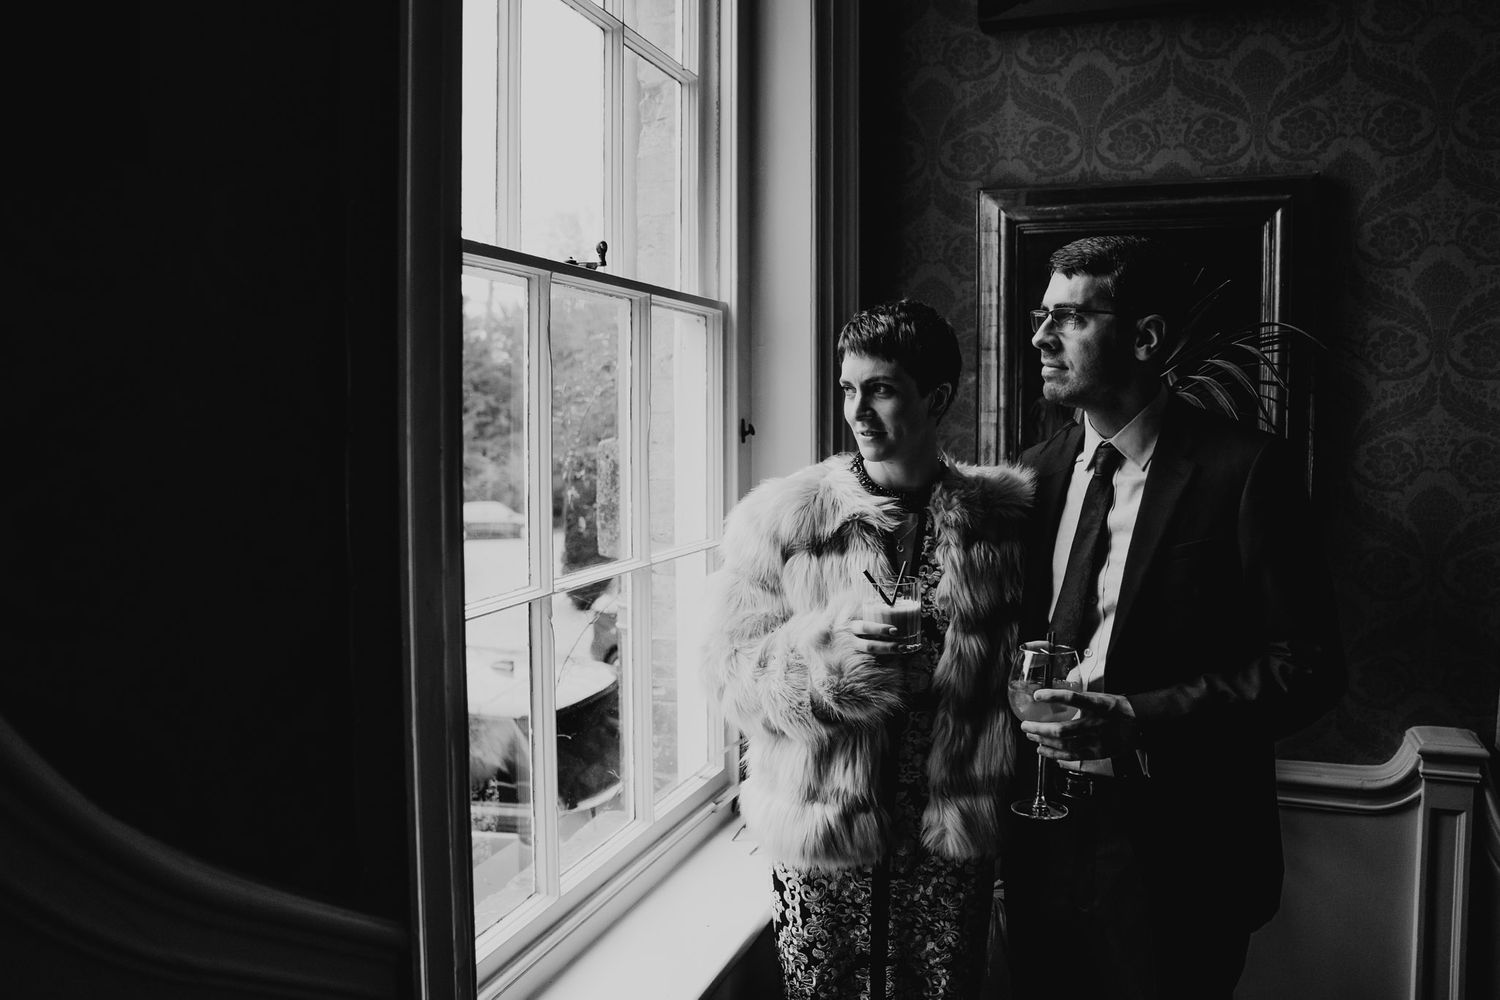 Black and white photo of bride and groom looking out of the window at 10 Castle Street, Dorset